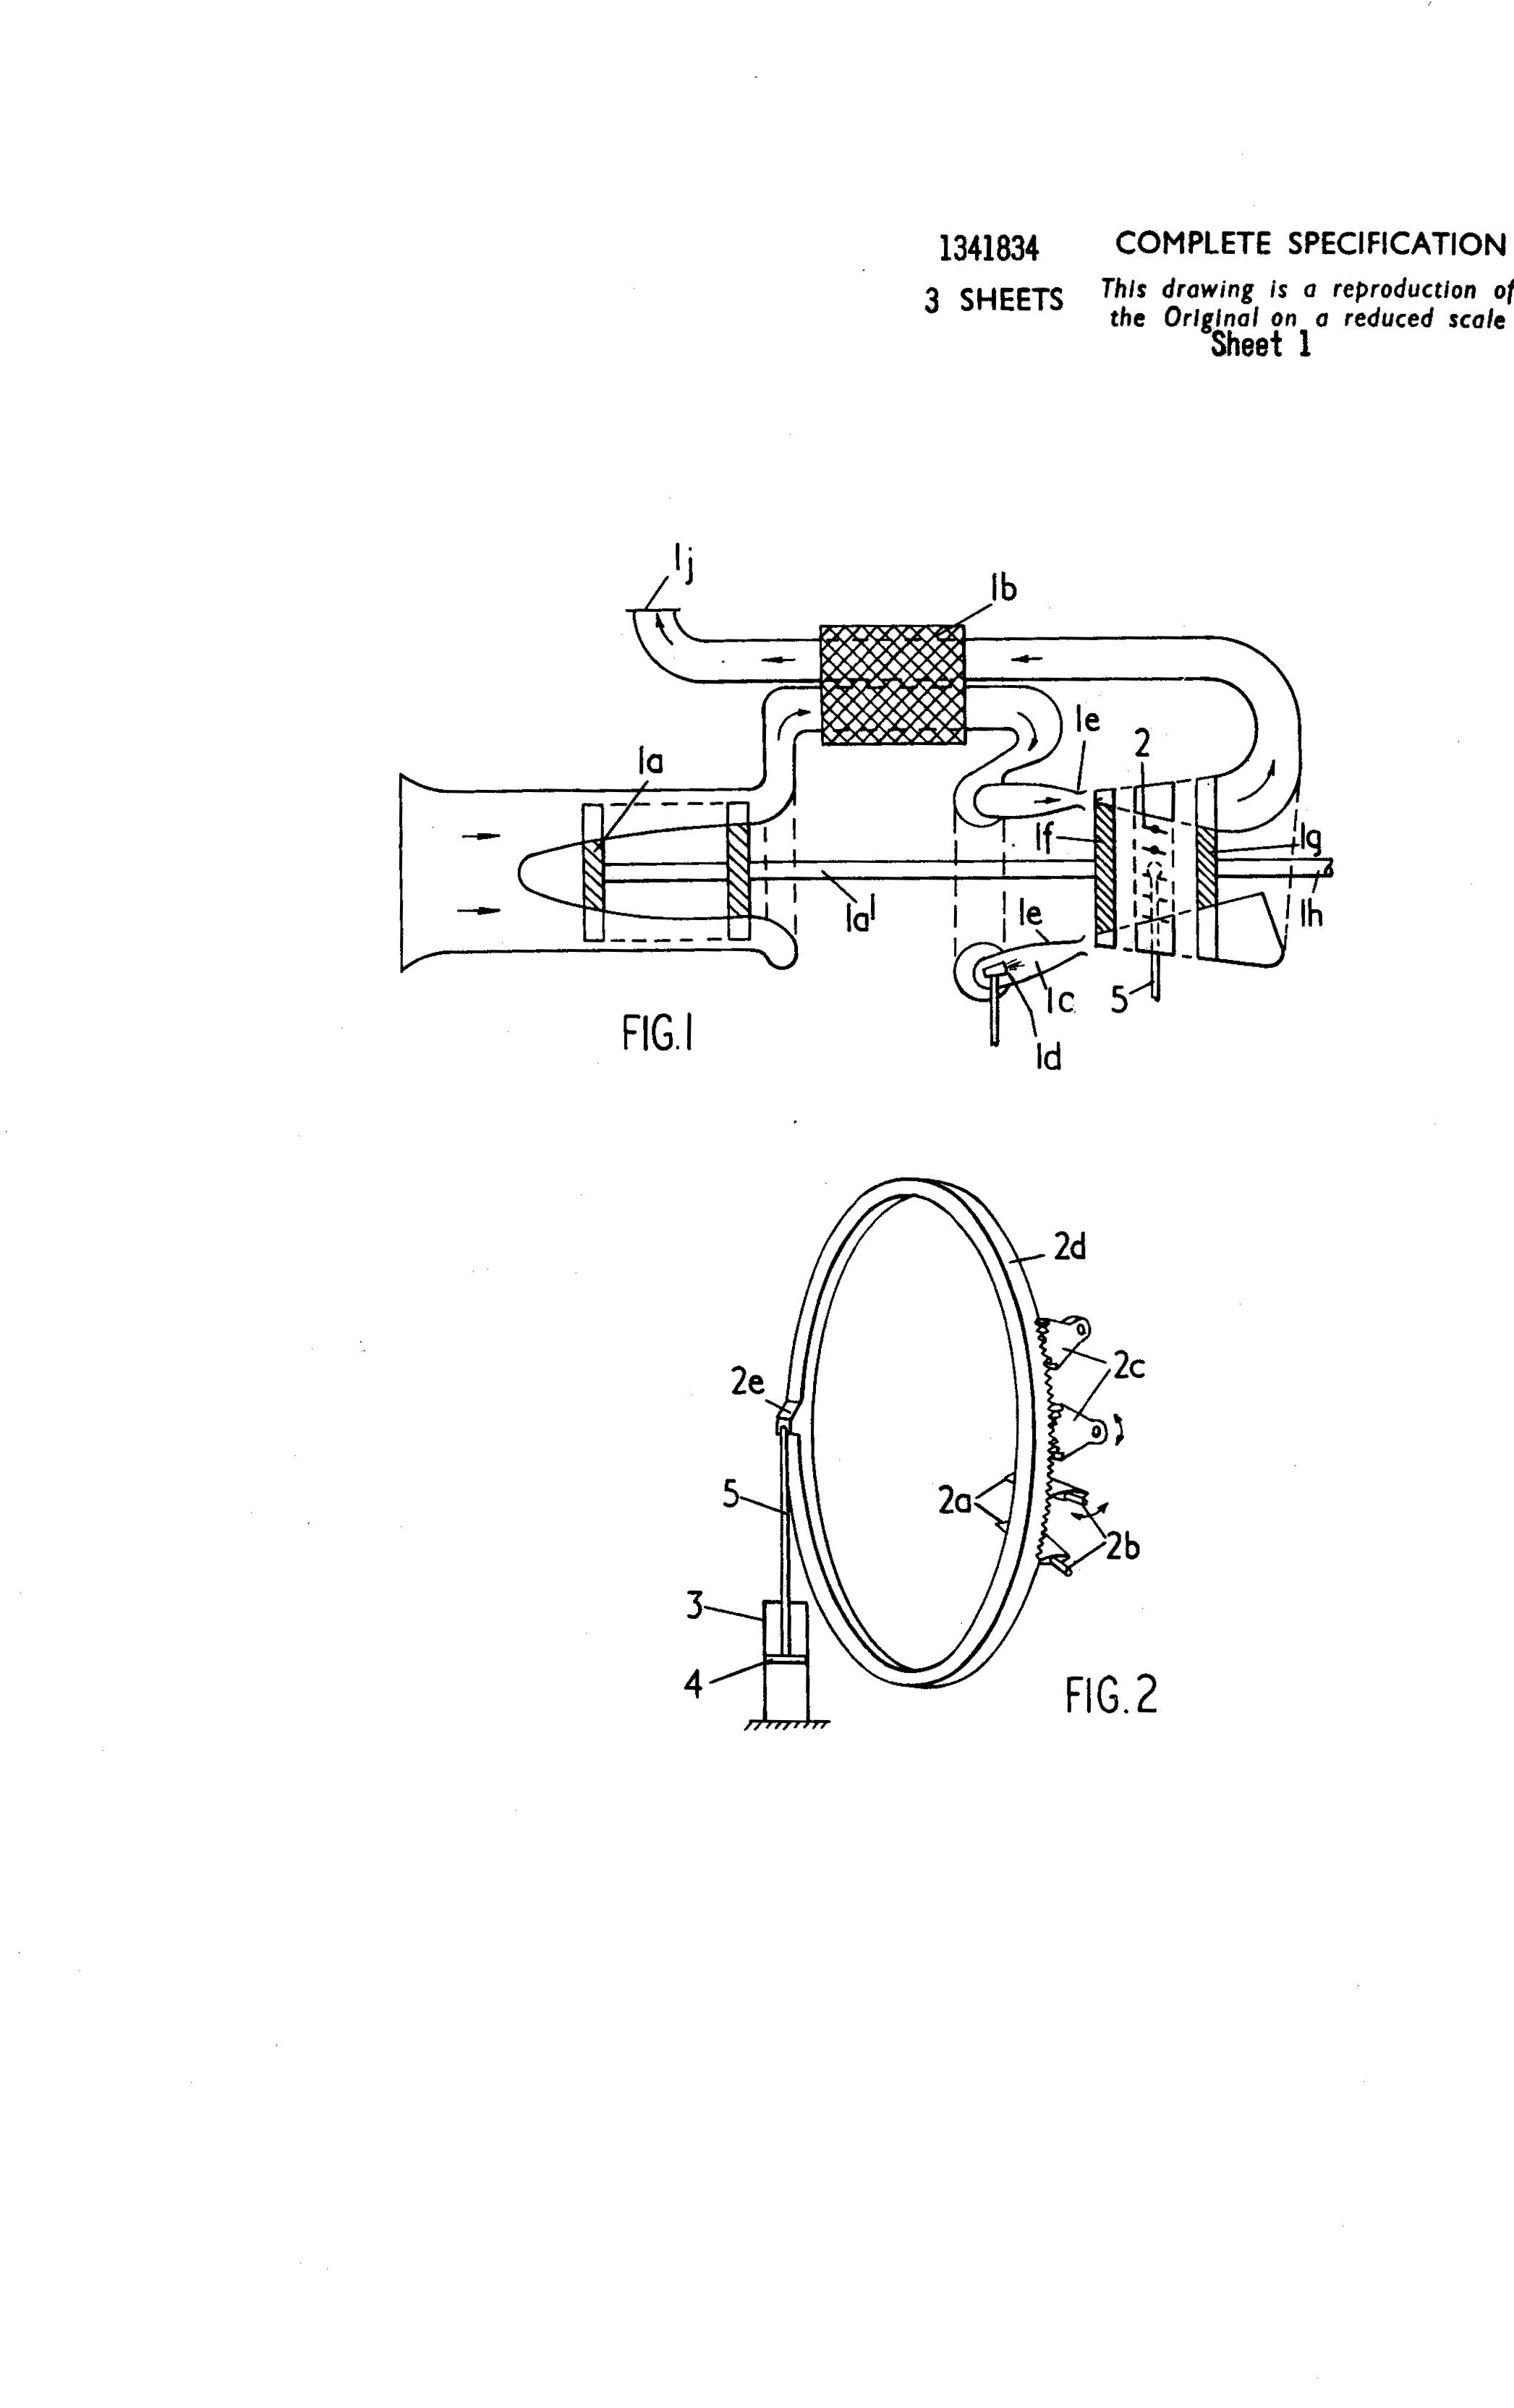 Ultra Electronic Controls Patent - Relating to Hydraulic